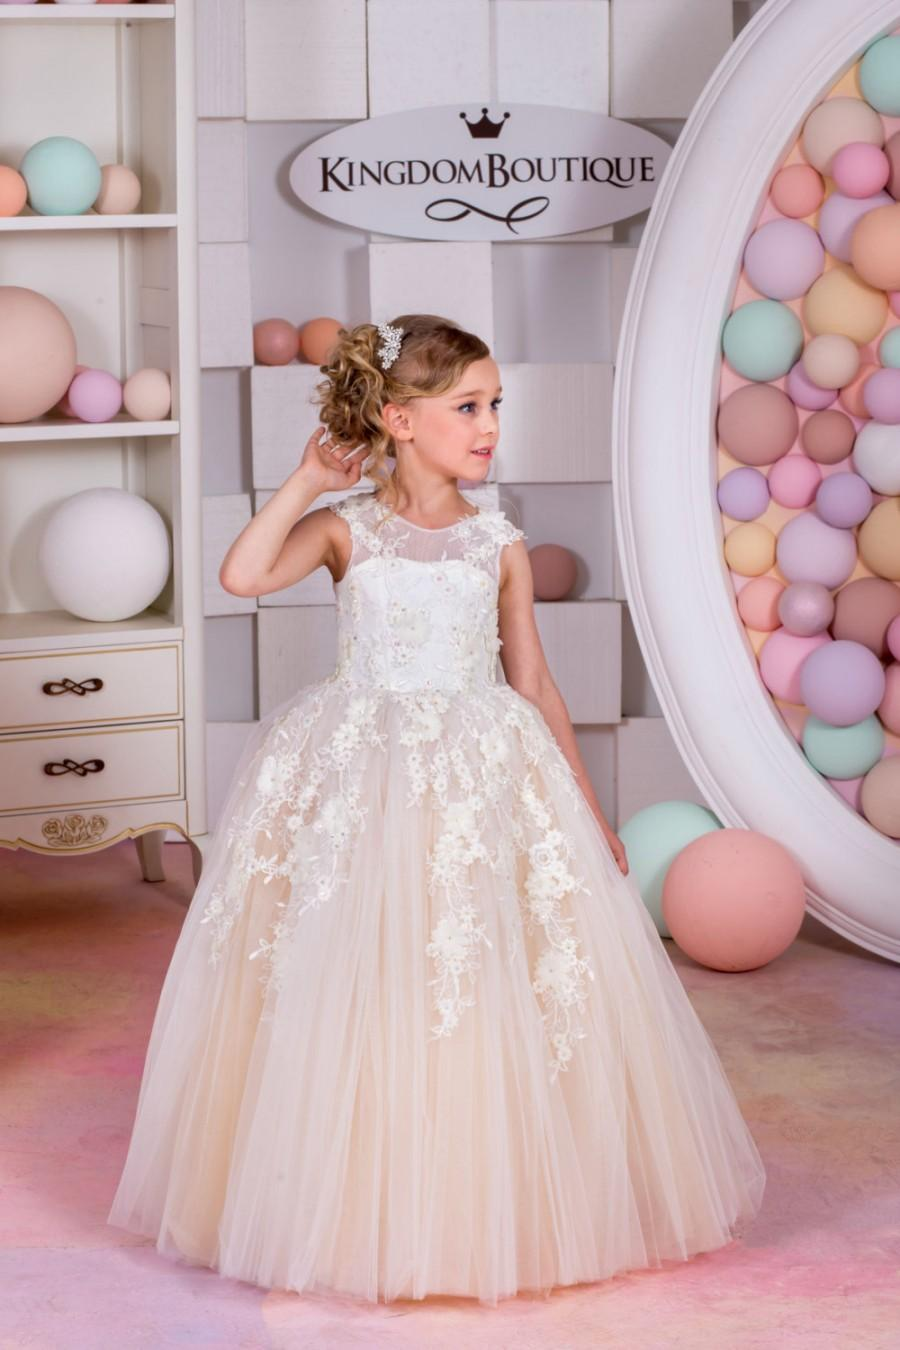 4a4d04fe51c06 Ivory and Blush Tulle Flower Girl Dress - Birthday Wedding Party Holiday  Bridesmaid Ivory and Blush Tulle Flower Girl Dress 15-027